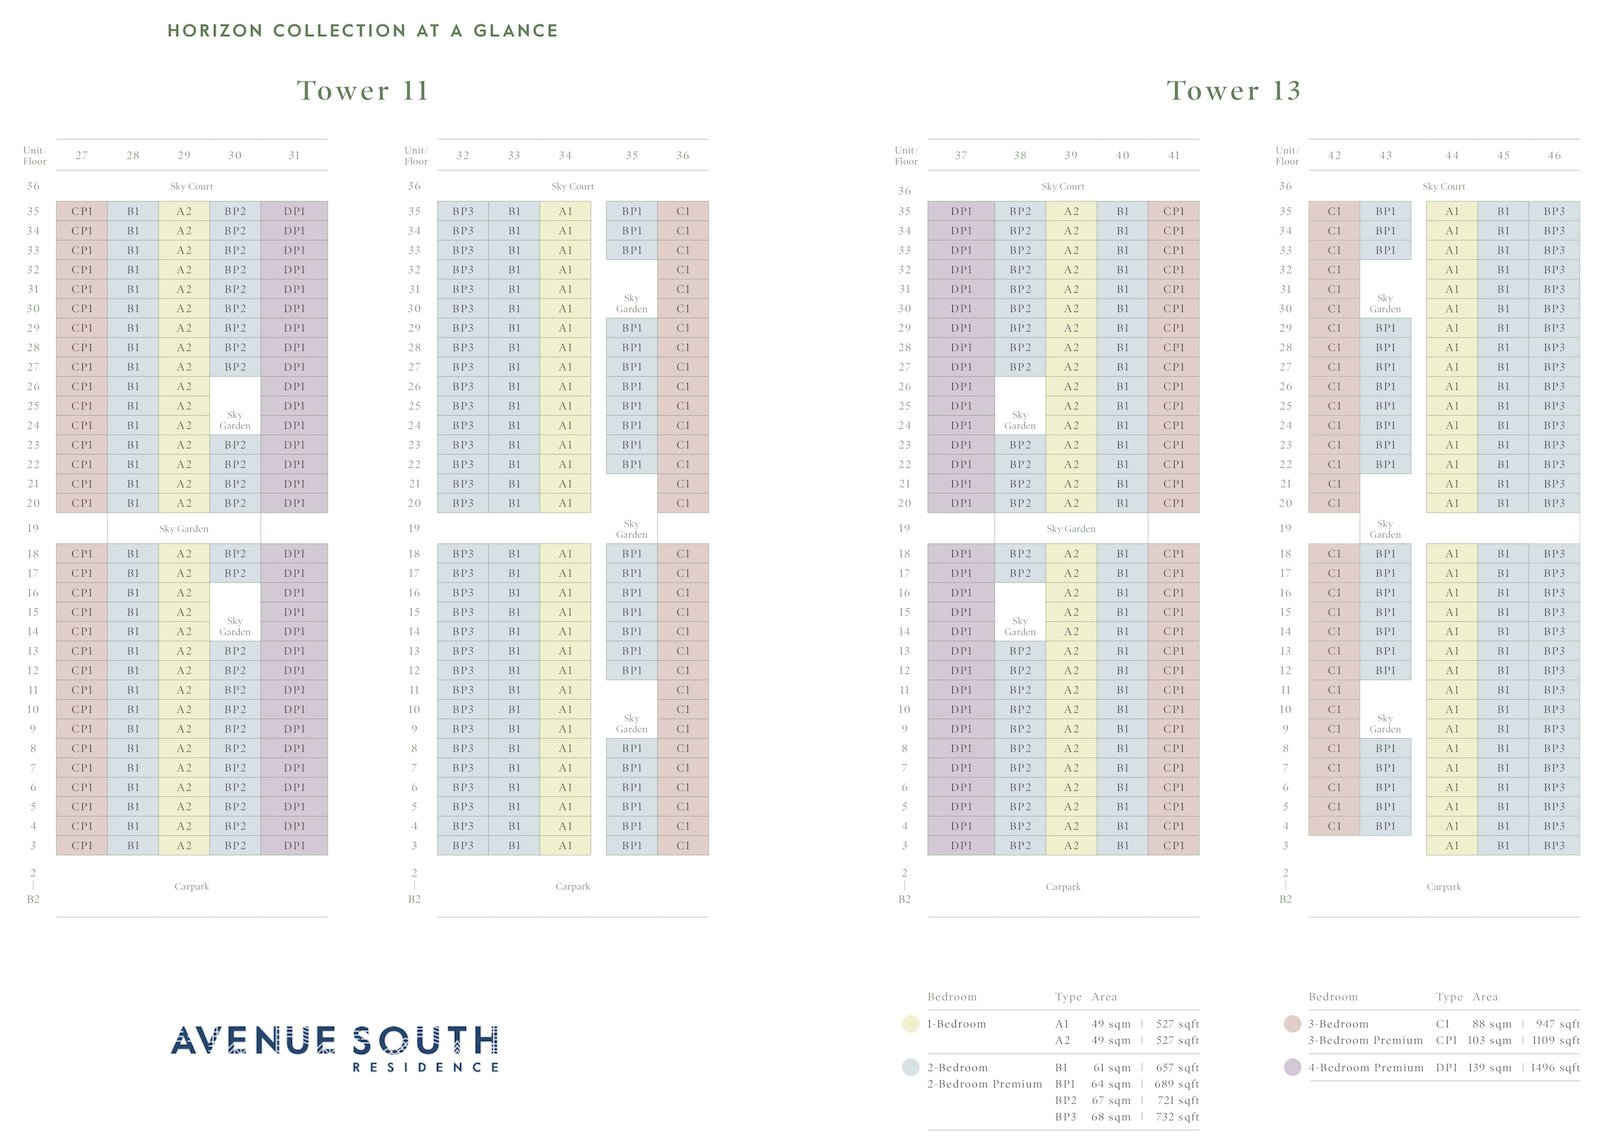 Avenue South Residence 南峰雅苑 schematic chart horizon